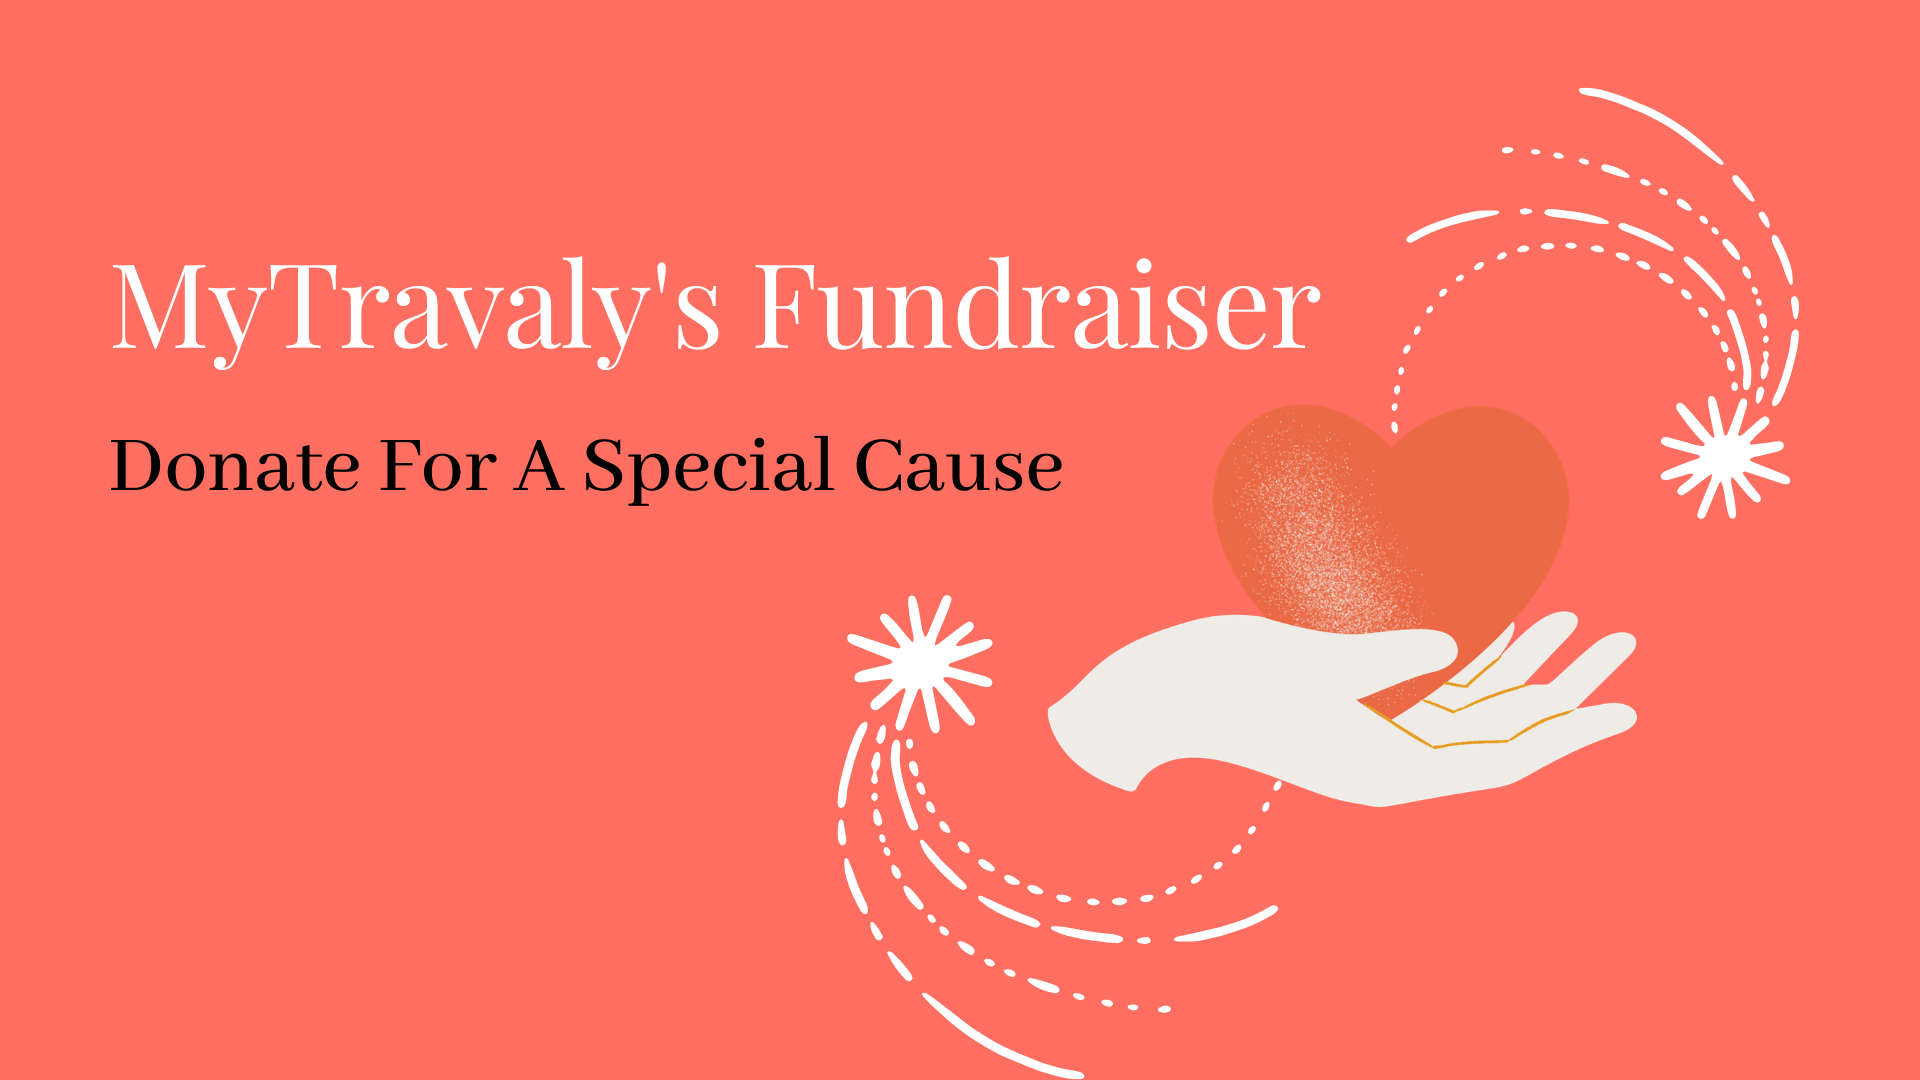 Support A Cause Close To Your Heart - Donate To MyTravaly's Fundraiser